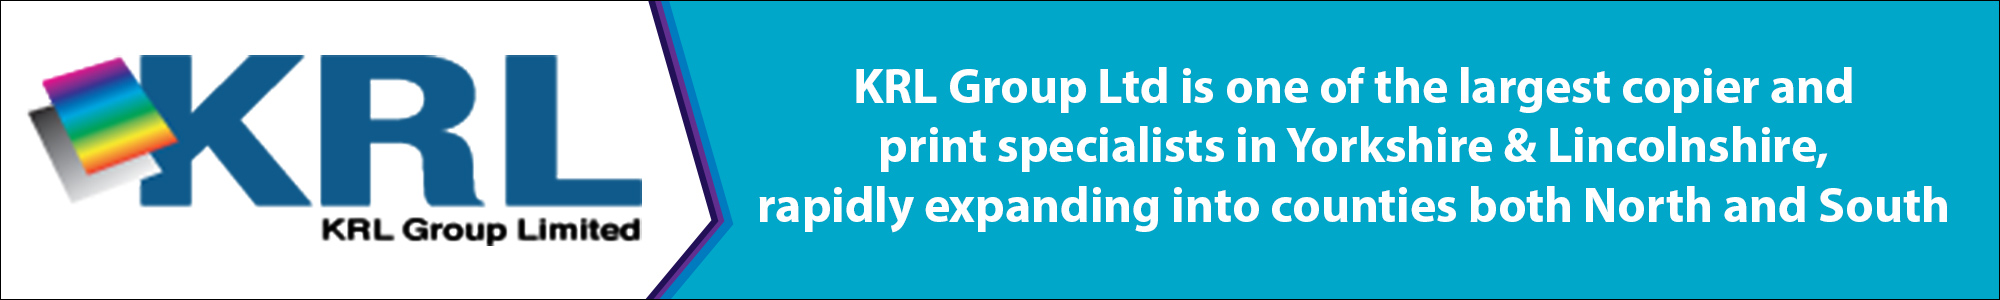 K R L Group Ltd